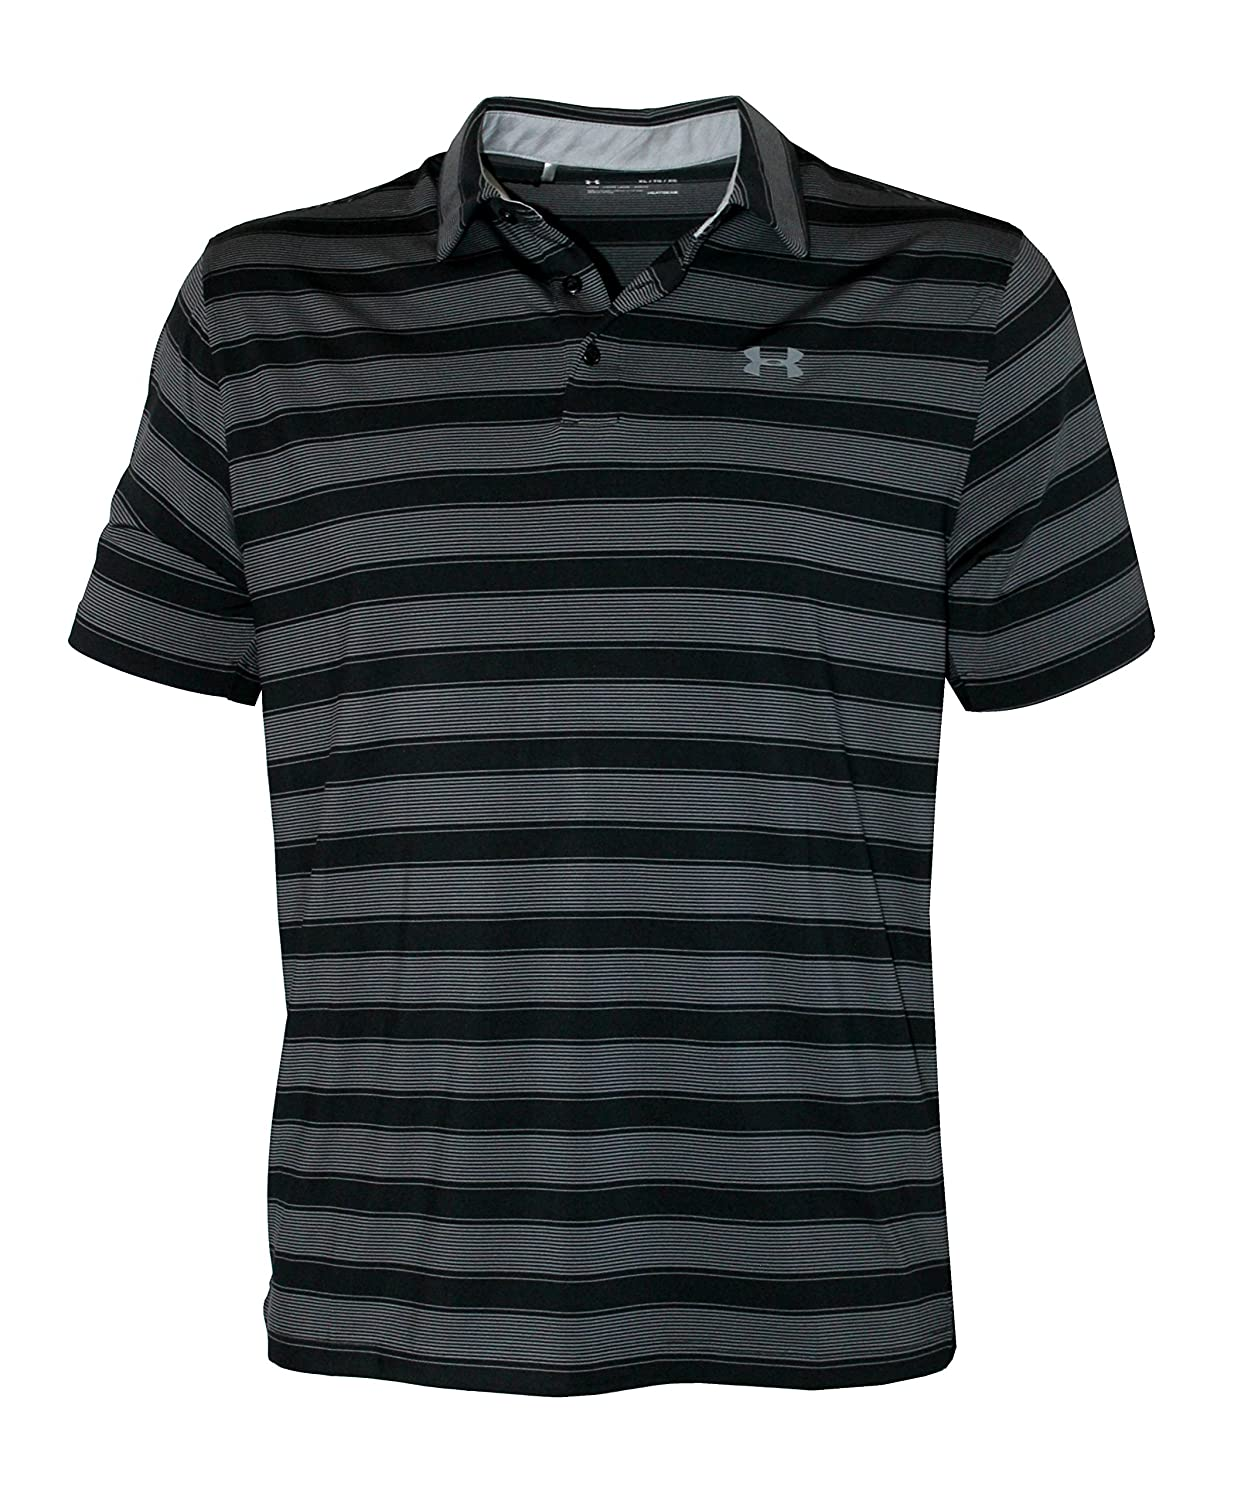 fb89ee6790 Under Armour Men's Performance Striped Shirt HeatGear Polo at Amazon Men's  Clothing store: